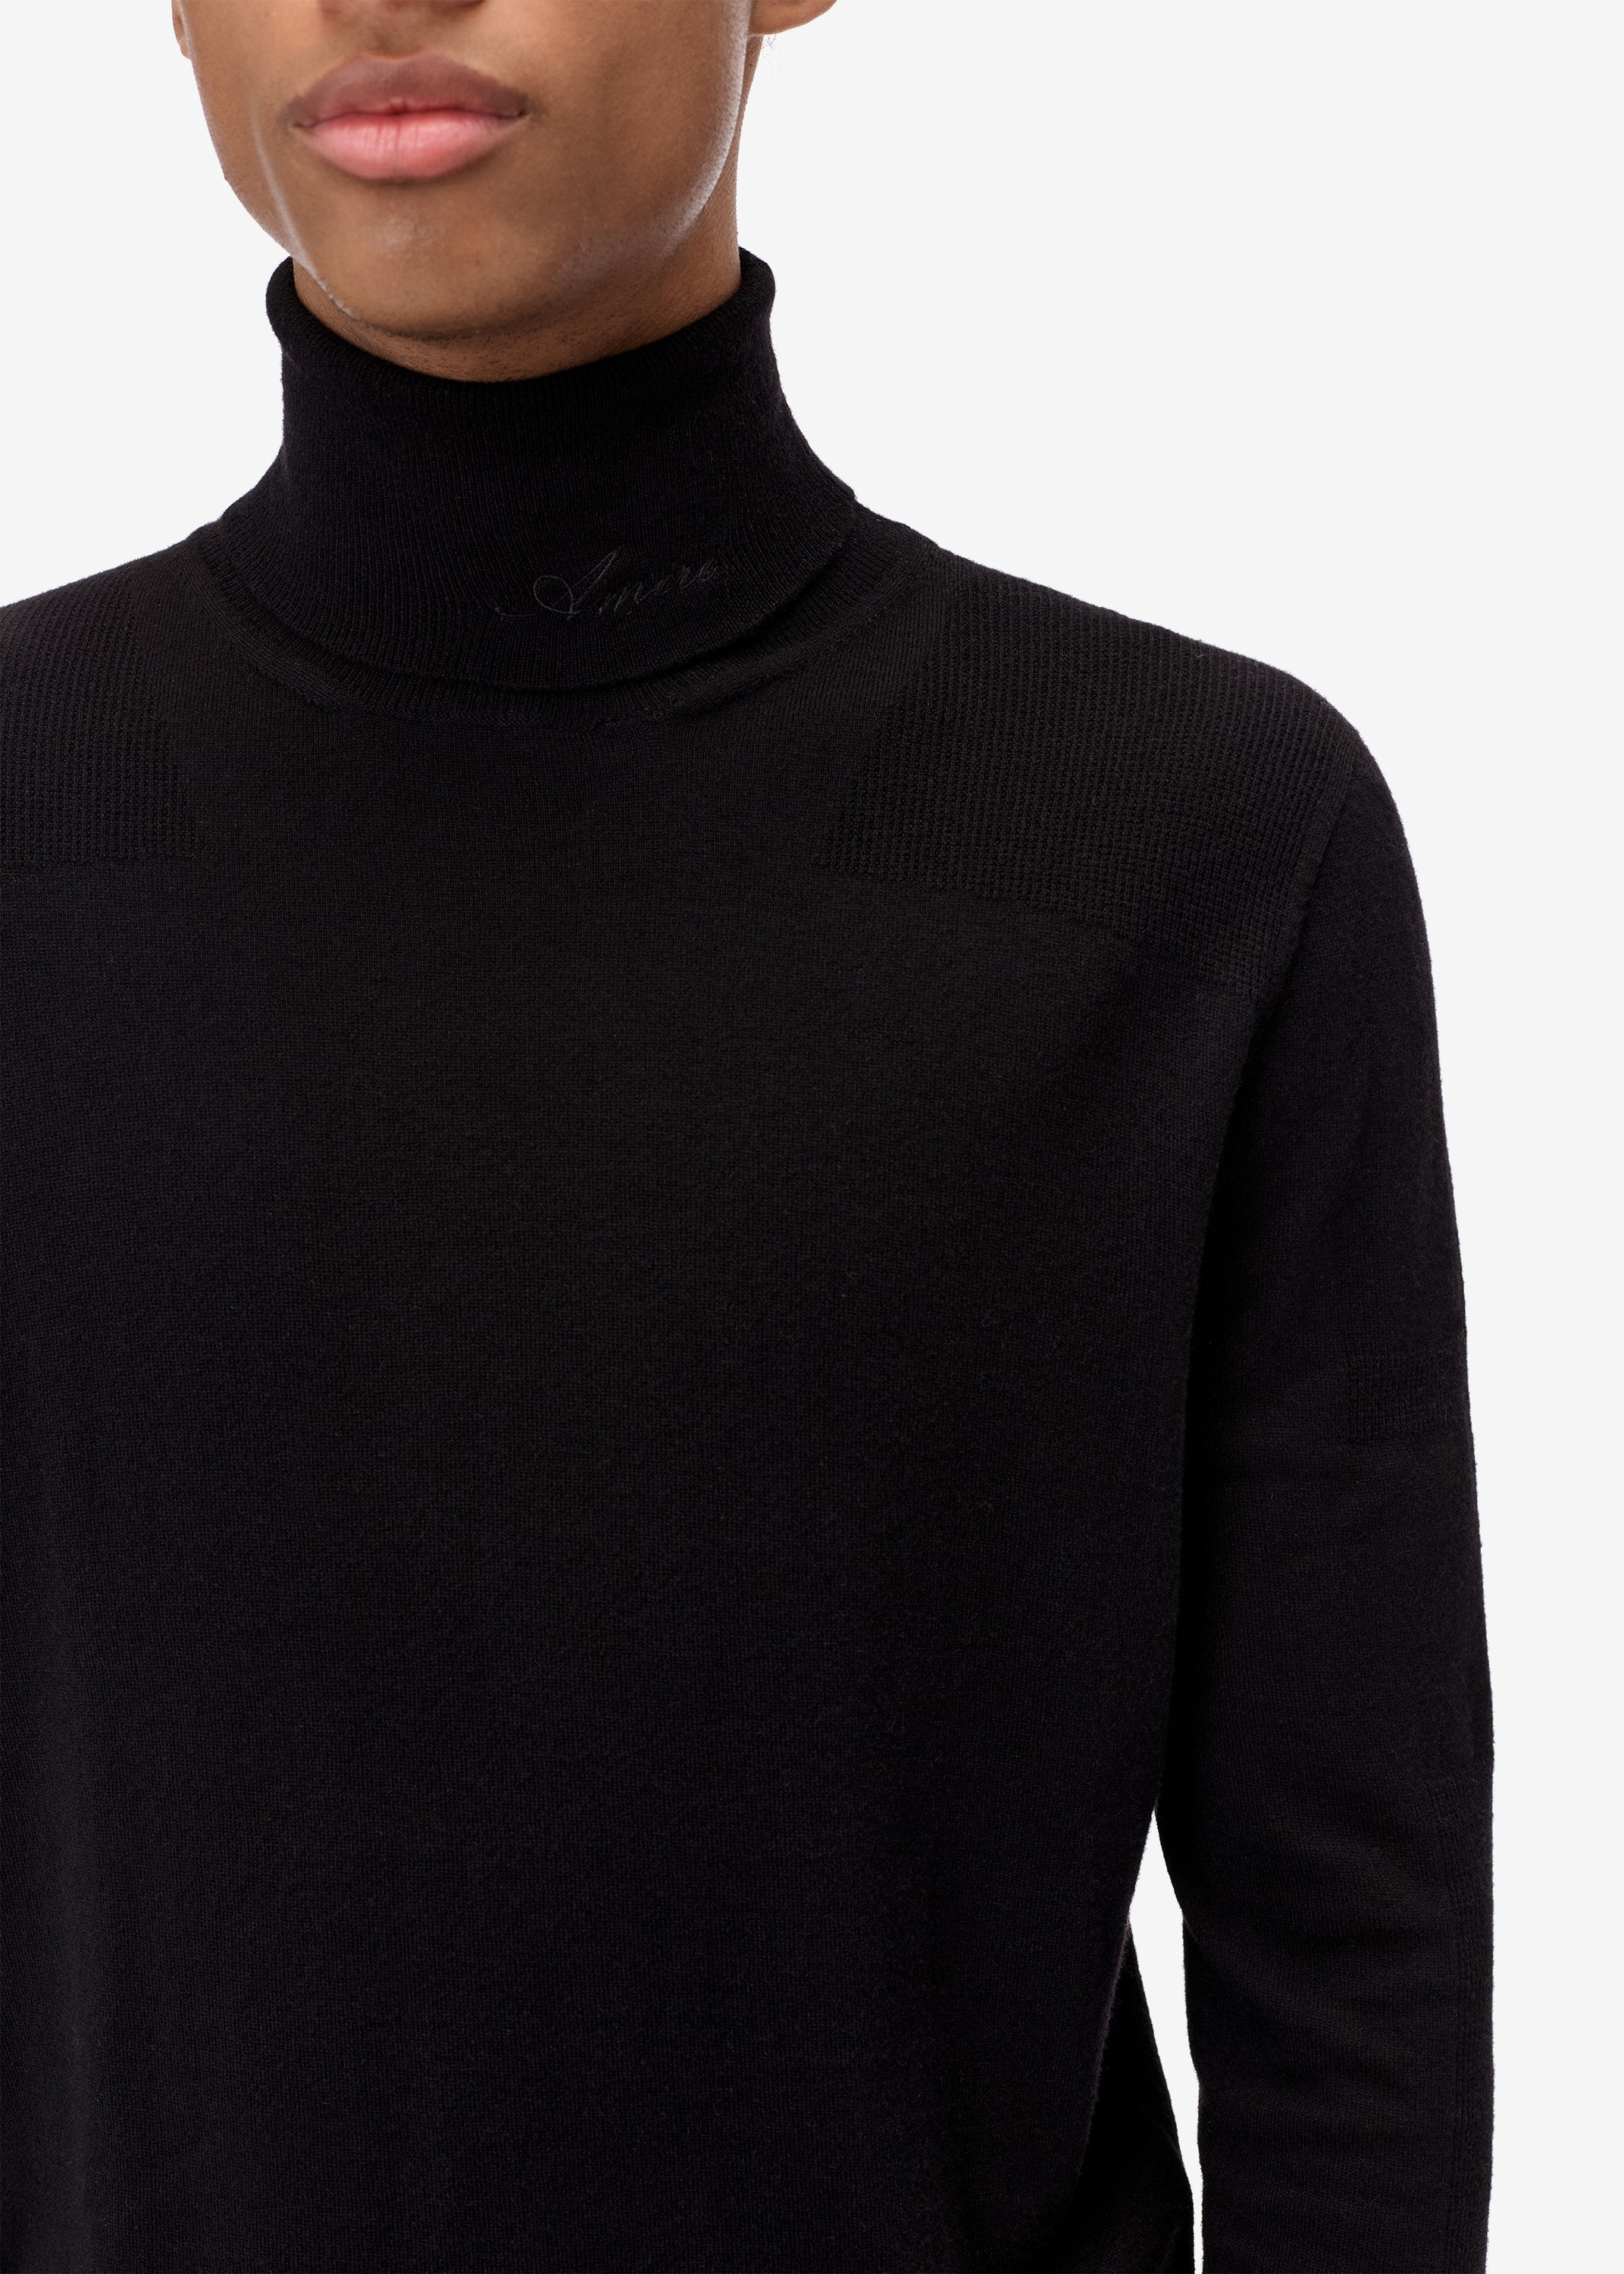 fitted-wool-turtleneck-black-image-2